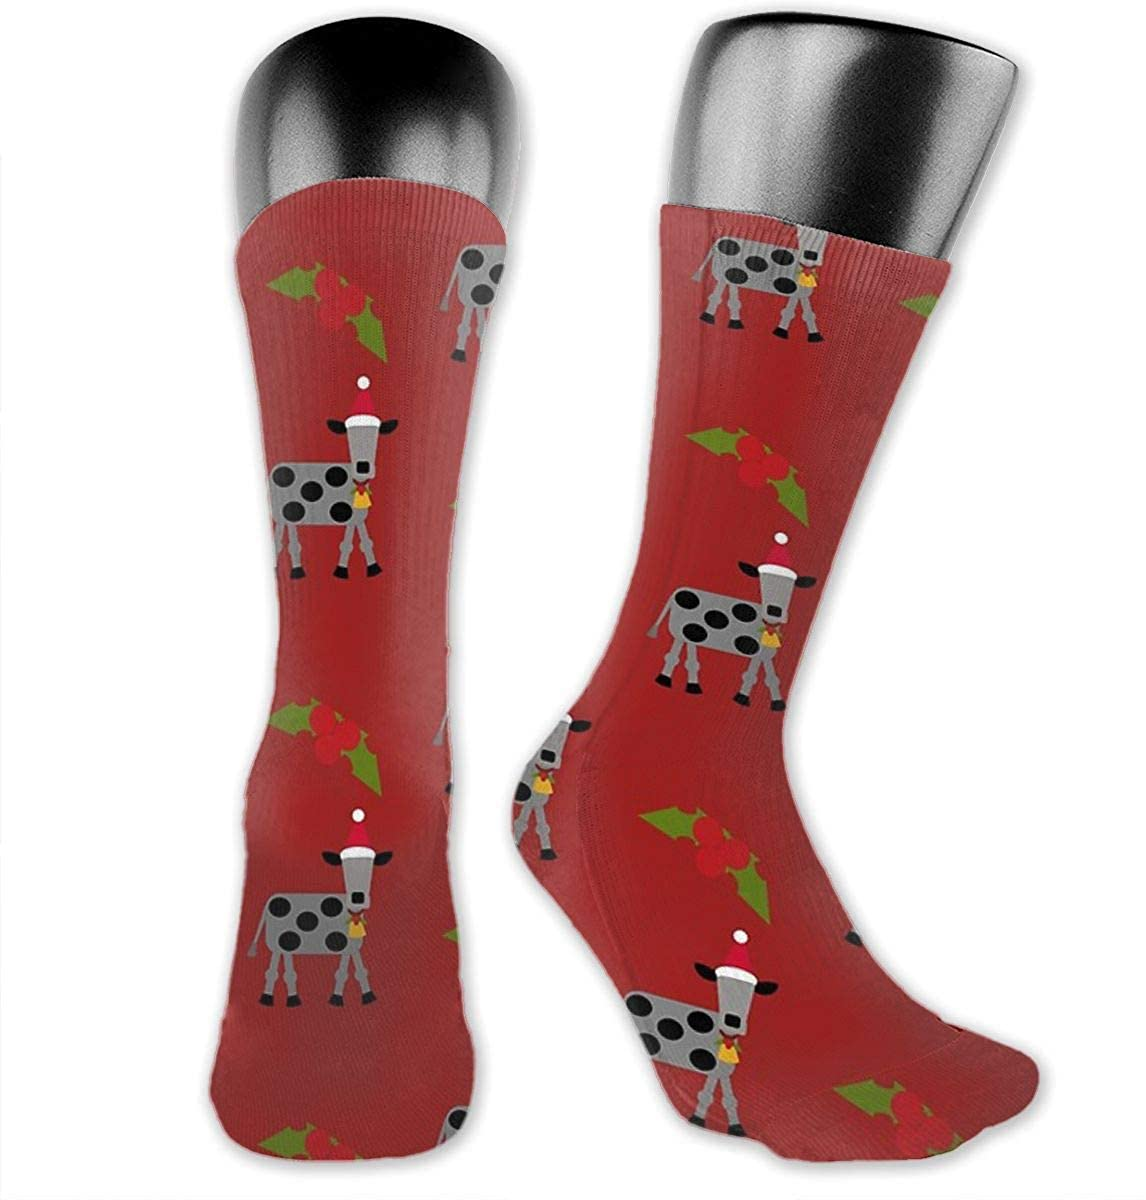 Unisex Crazy Funny Cool 3D Print Holiday Cow With Holly Socks Running Medica Socks Novelty Casual Crew Socks